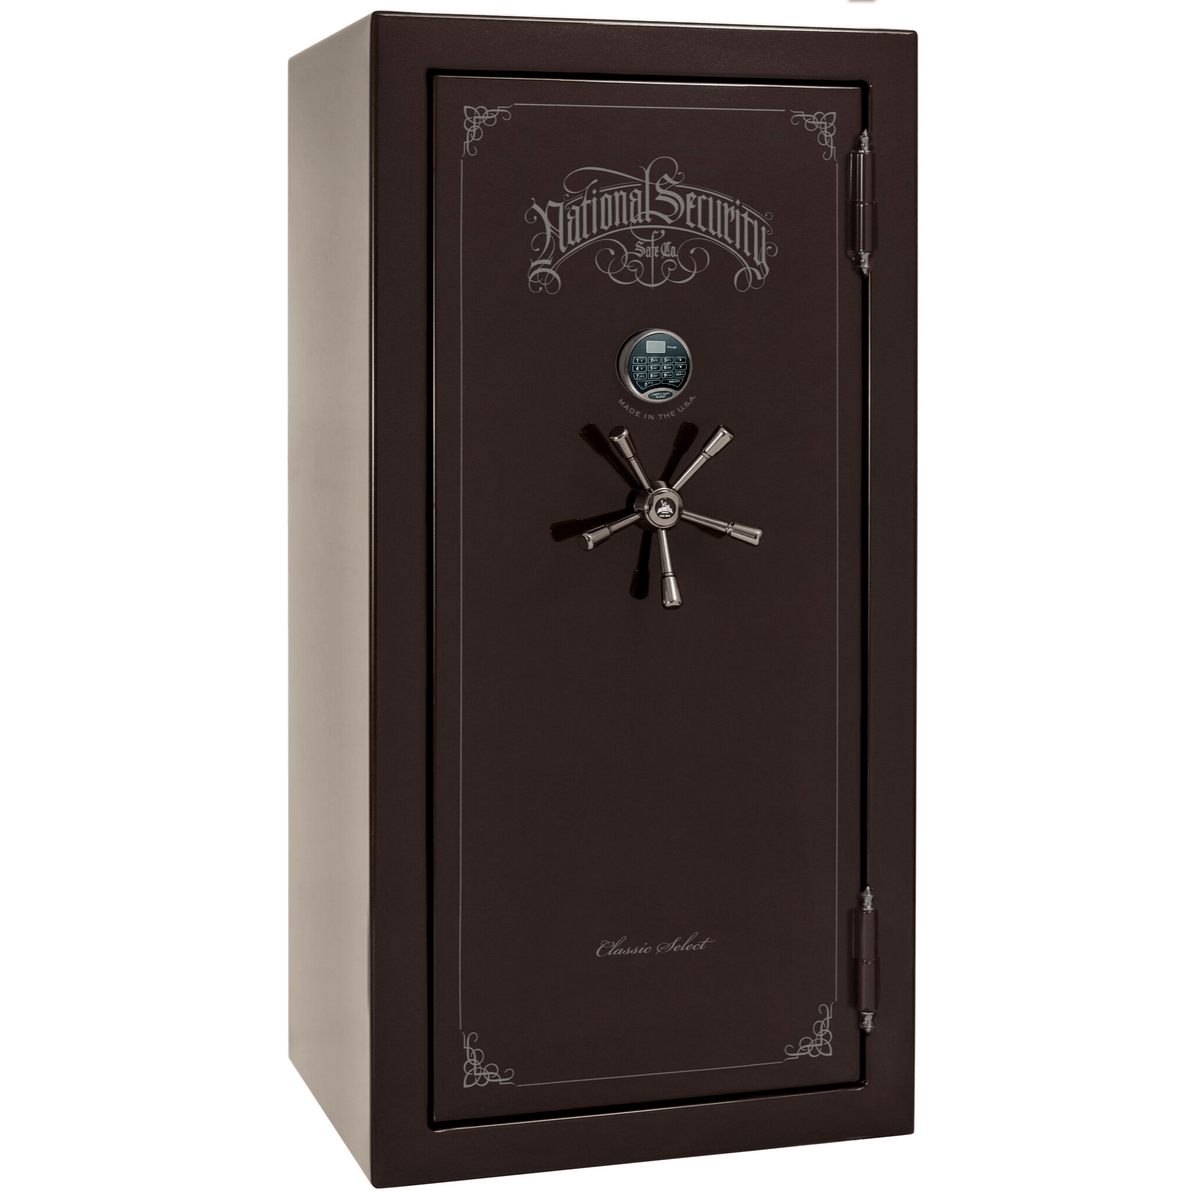 "Classic Select | 25 | Level 6 Security | 90 Minute Fire Protection | Black Cherry Gloss | Black Electronic Lock | 60.5""(H) x 30""(W) x 28.5""(D)"